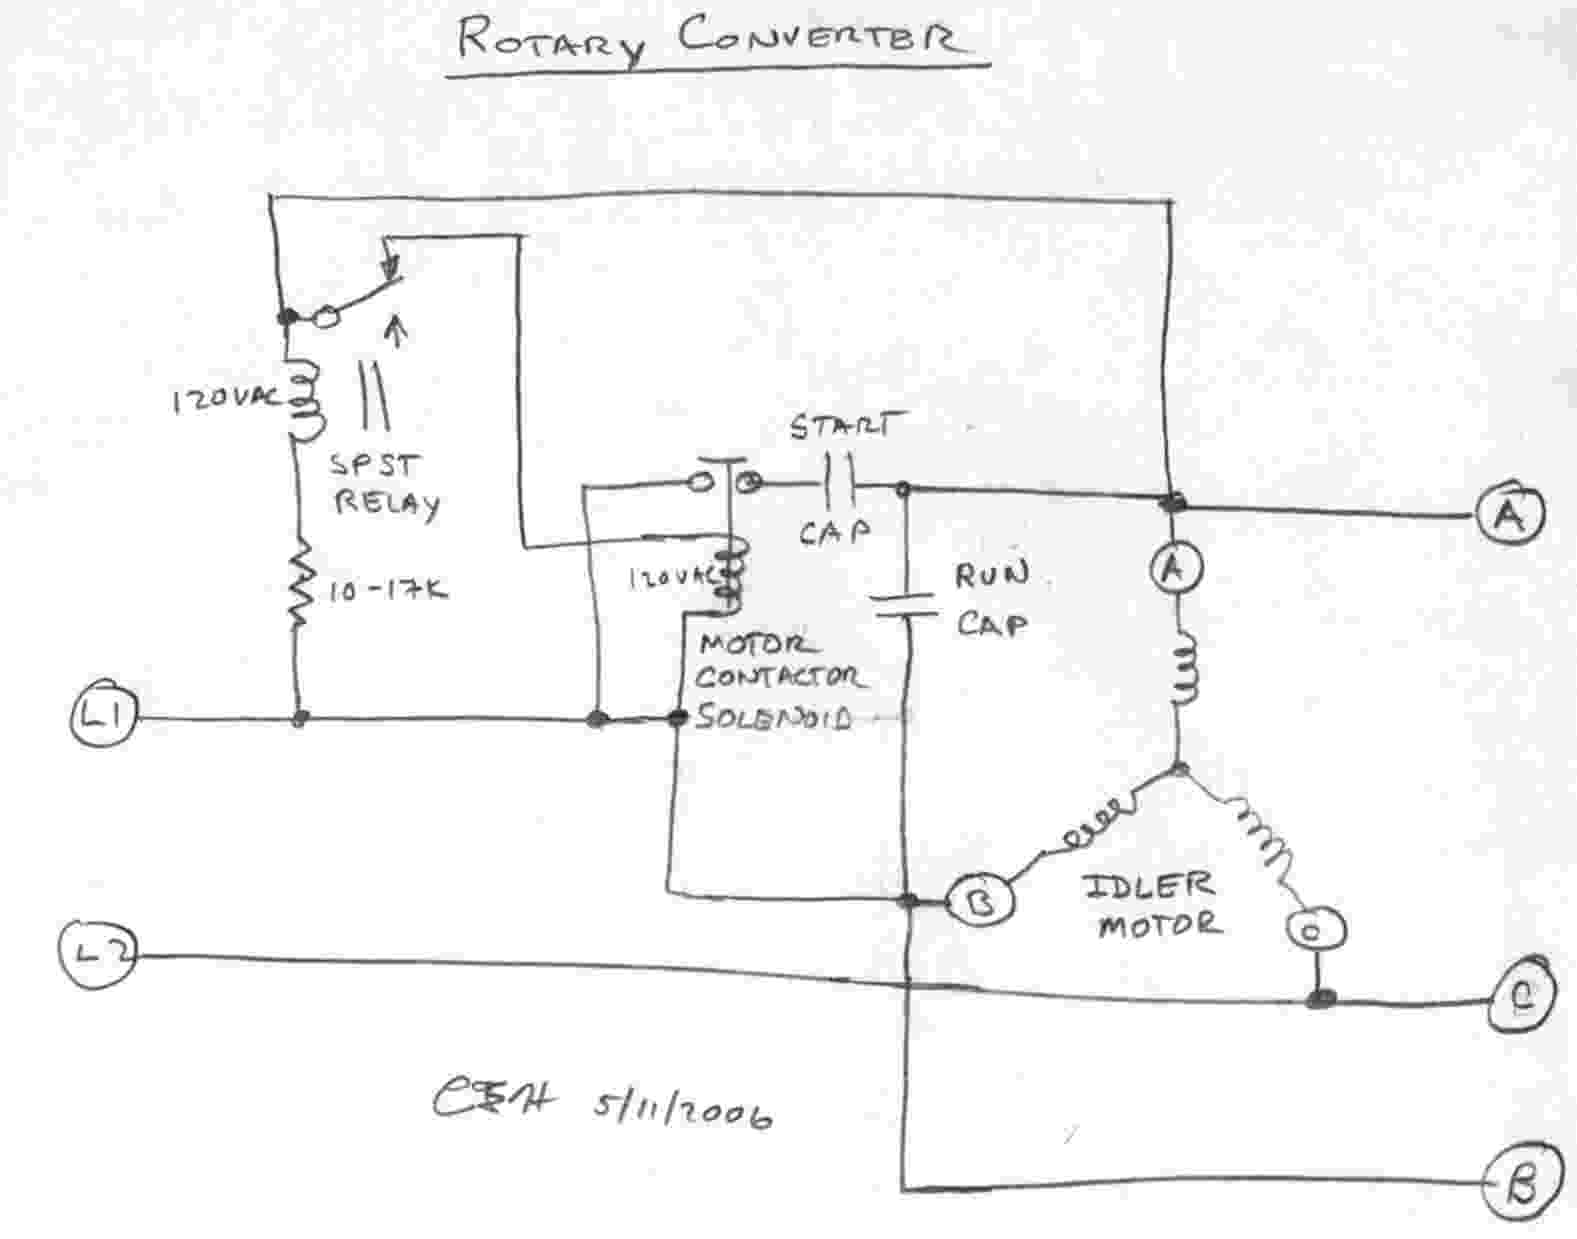 rotaryconv 3 phase converters how to build rotary phase converter wiring diagram at bakdesigns.co